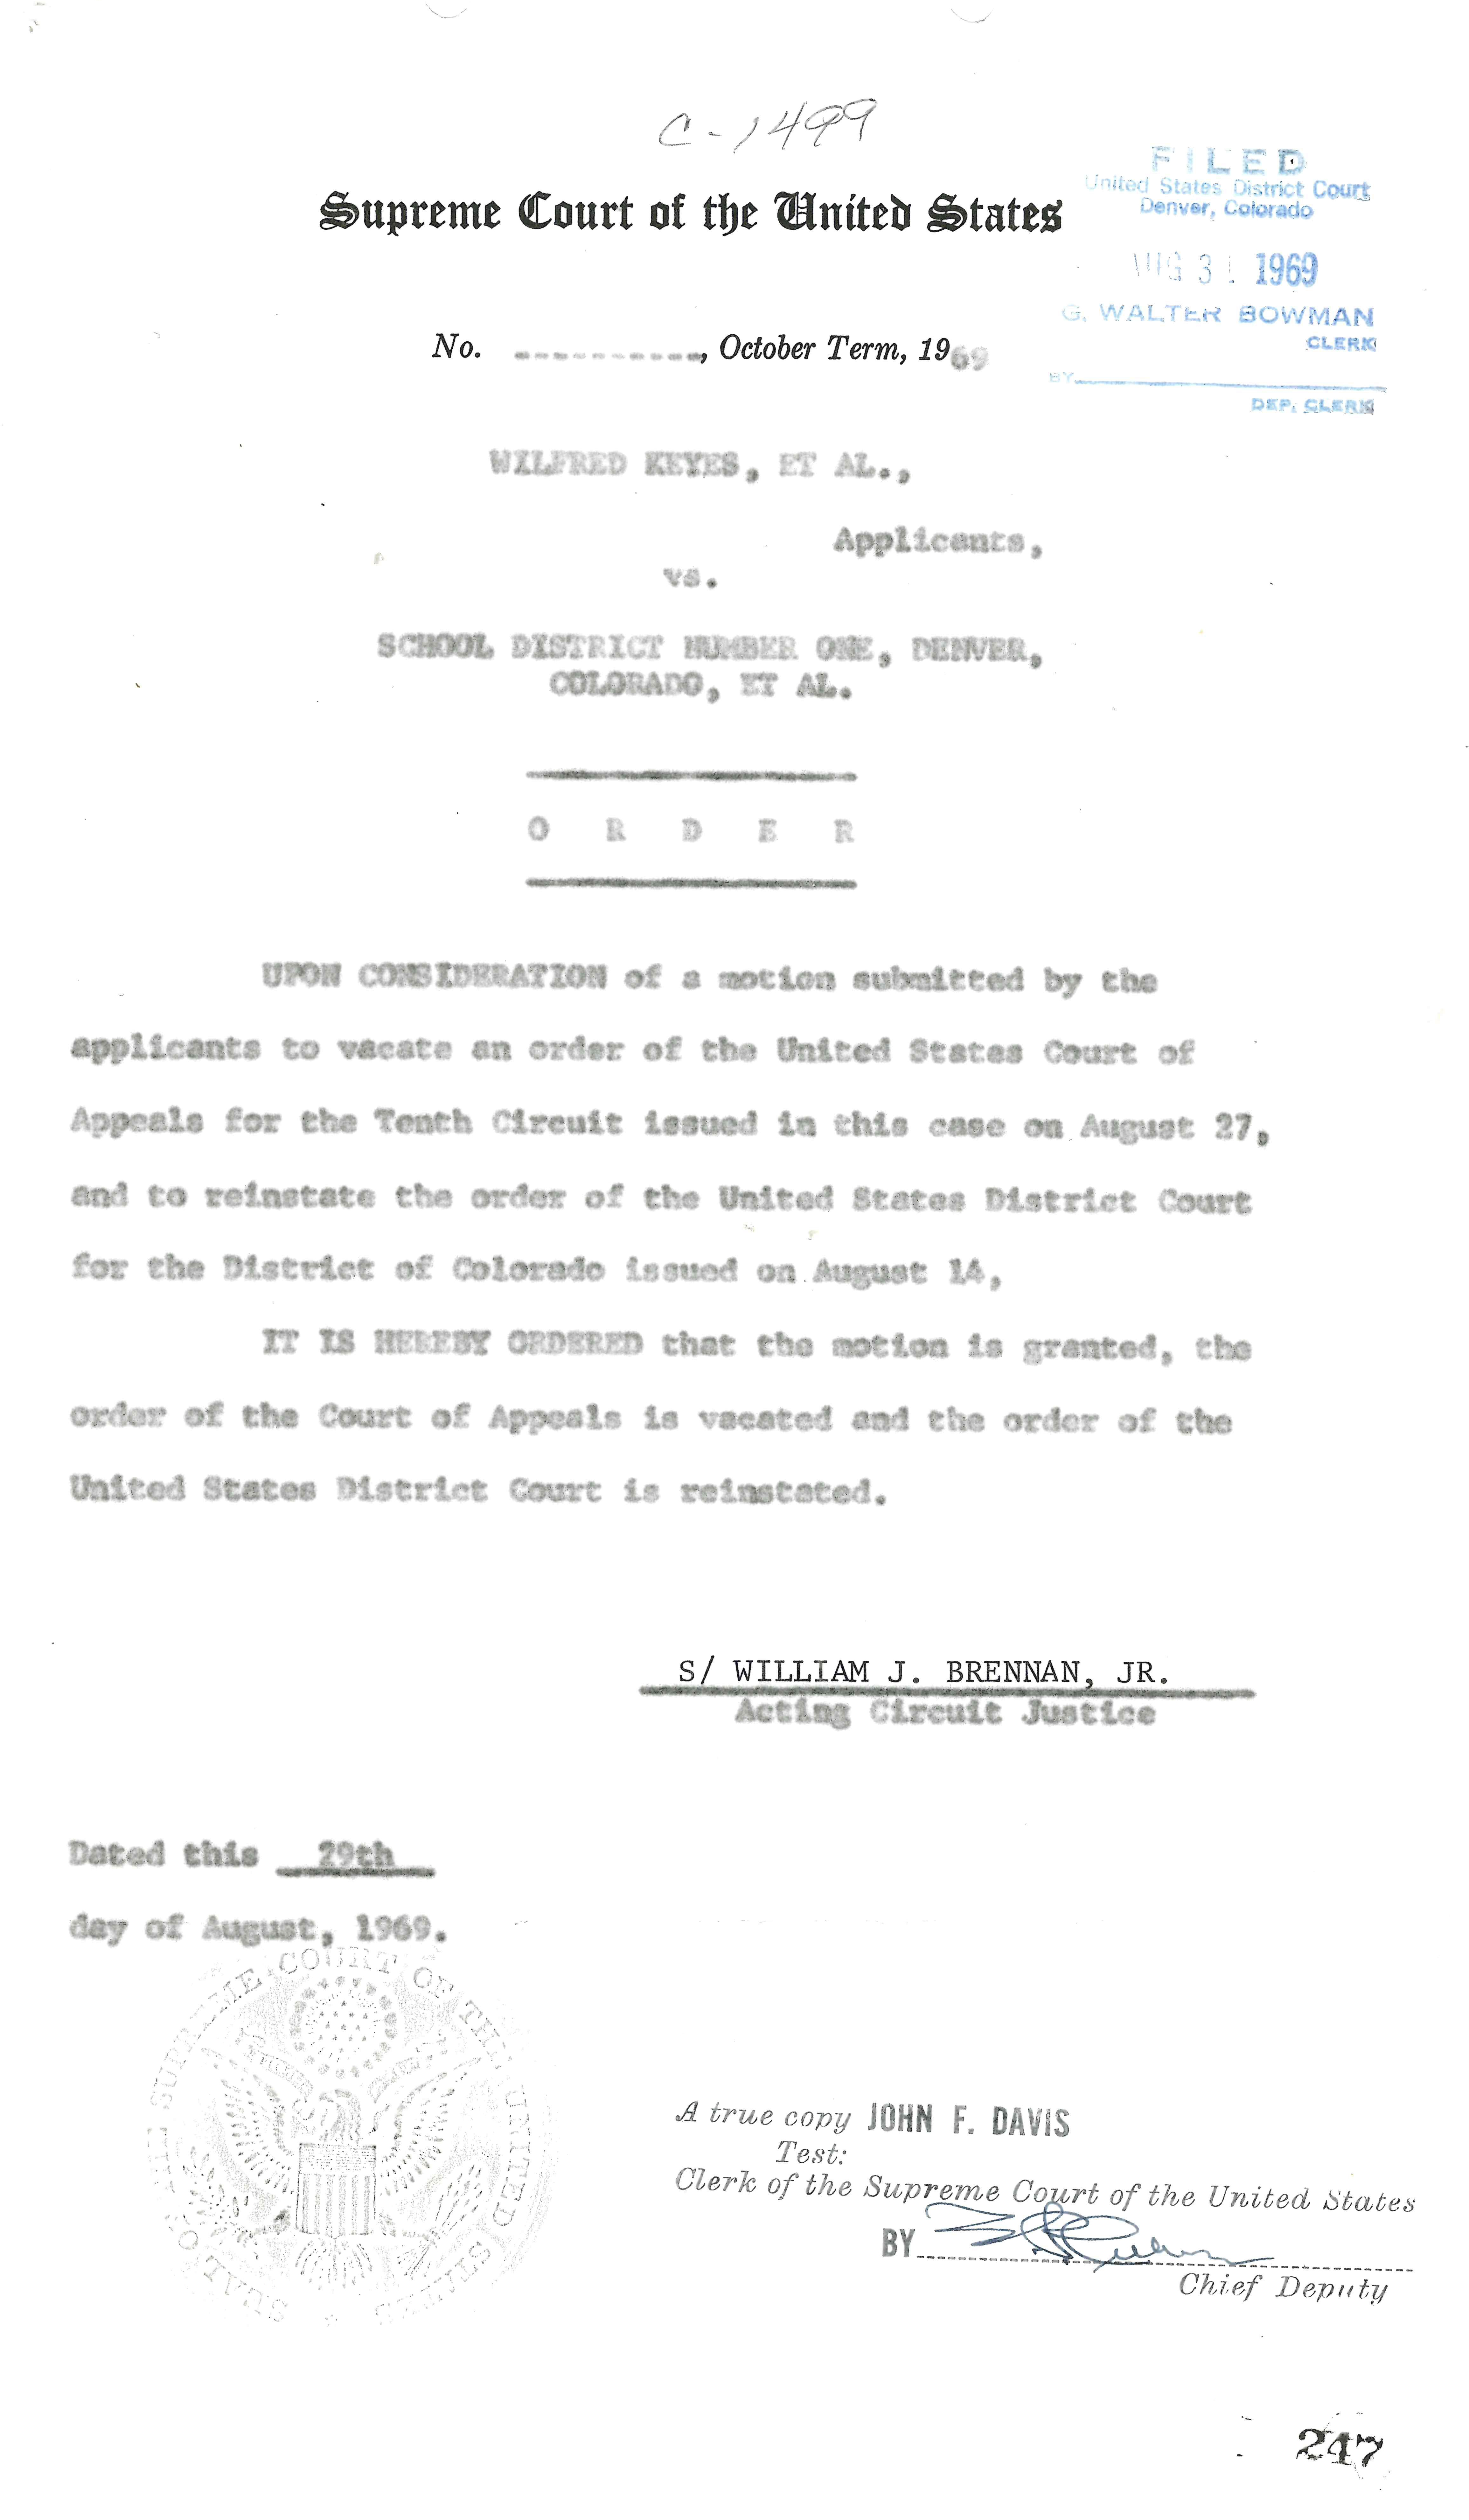 Image of a document captioned: Certified copy of Justice Brennan's order vacating the 10th Circuit Court's stay and placing Judge Doyle's injunction back in place.